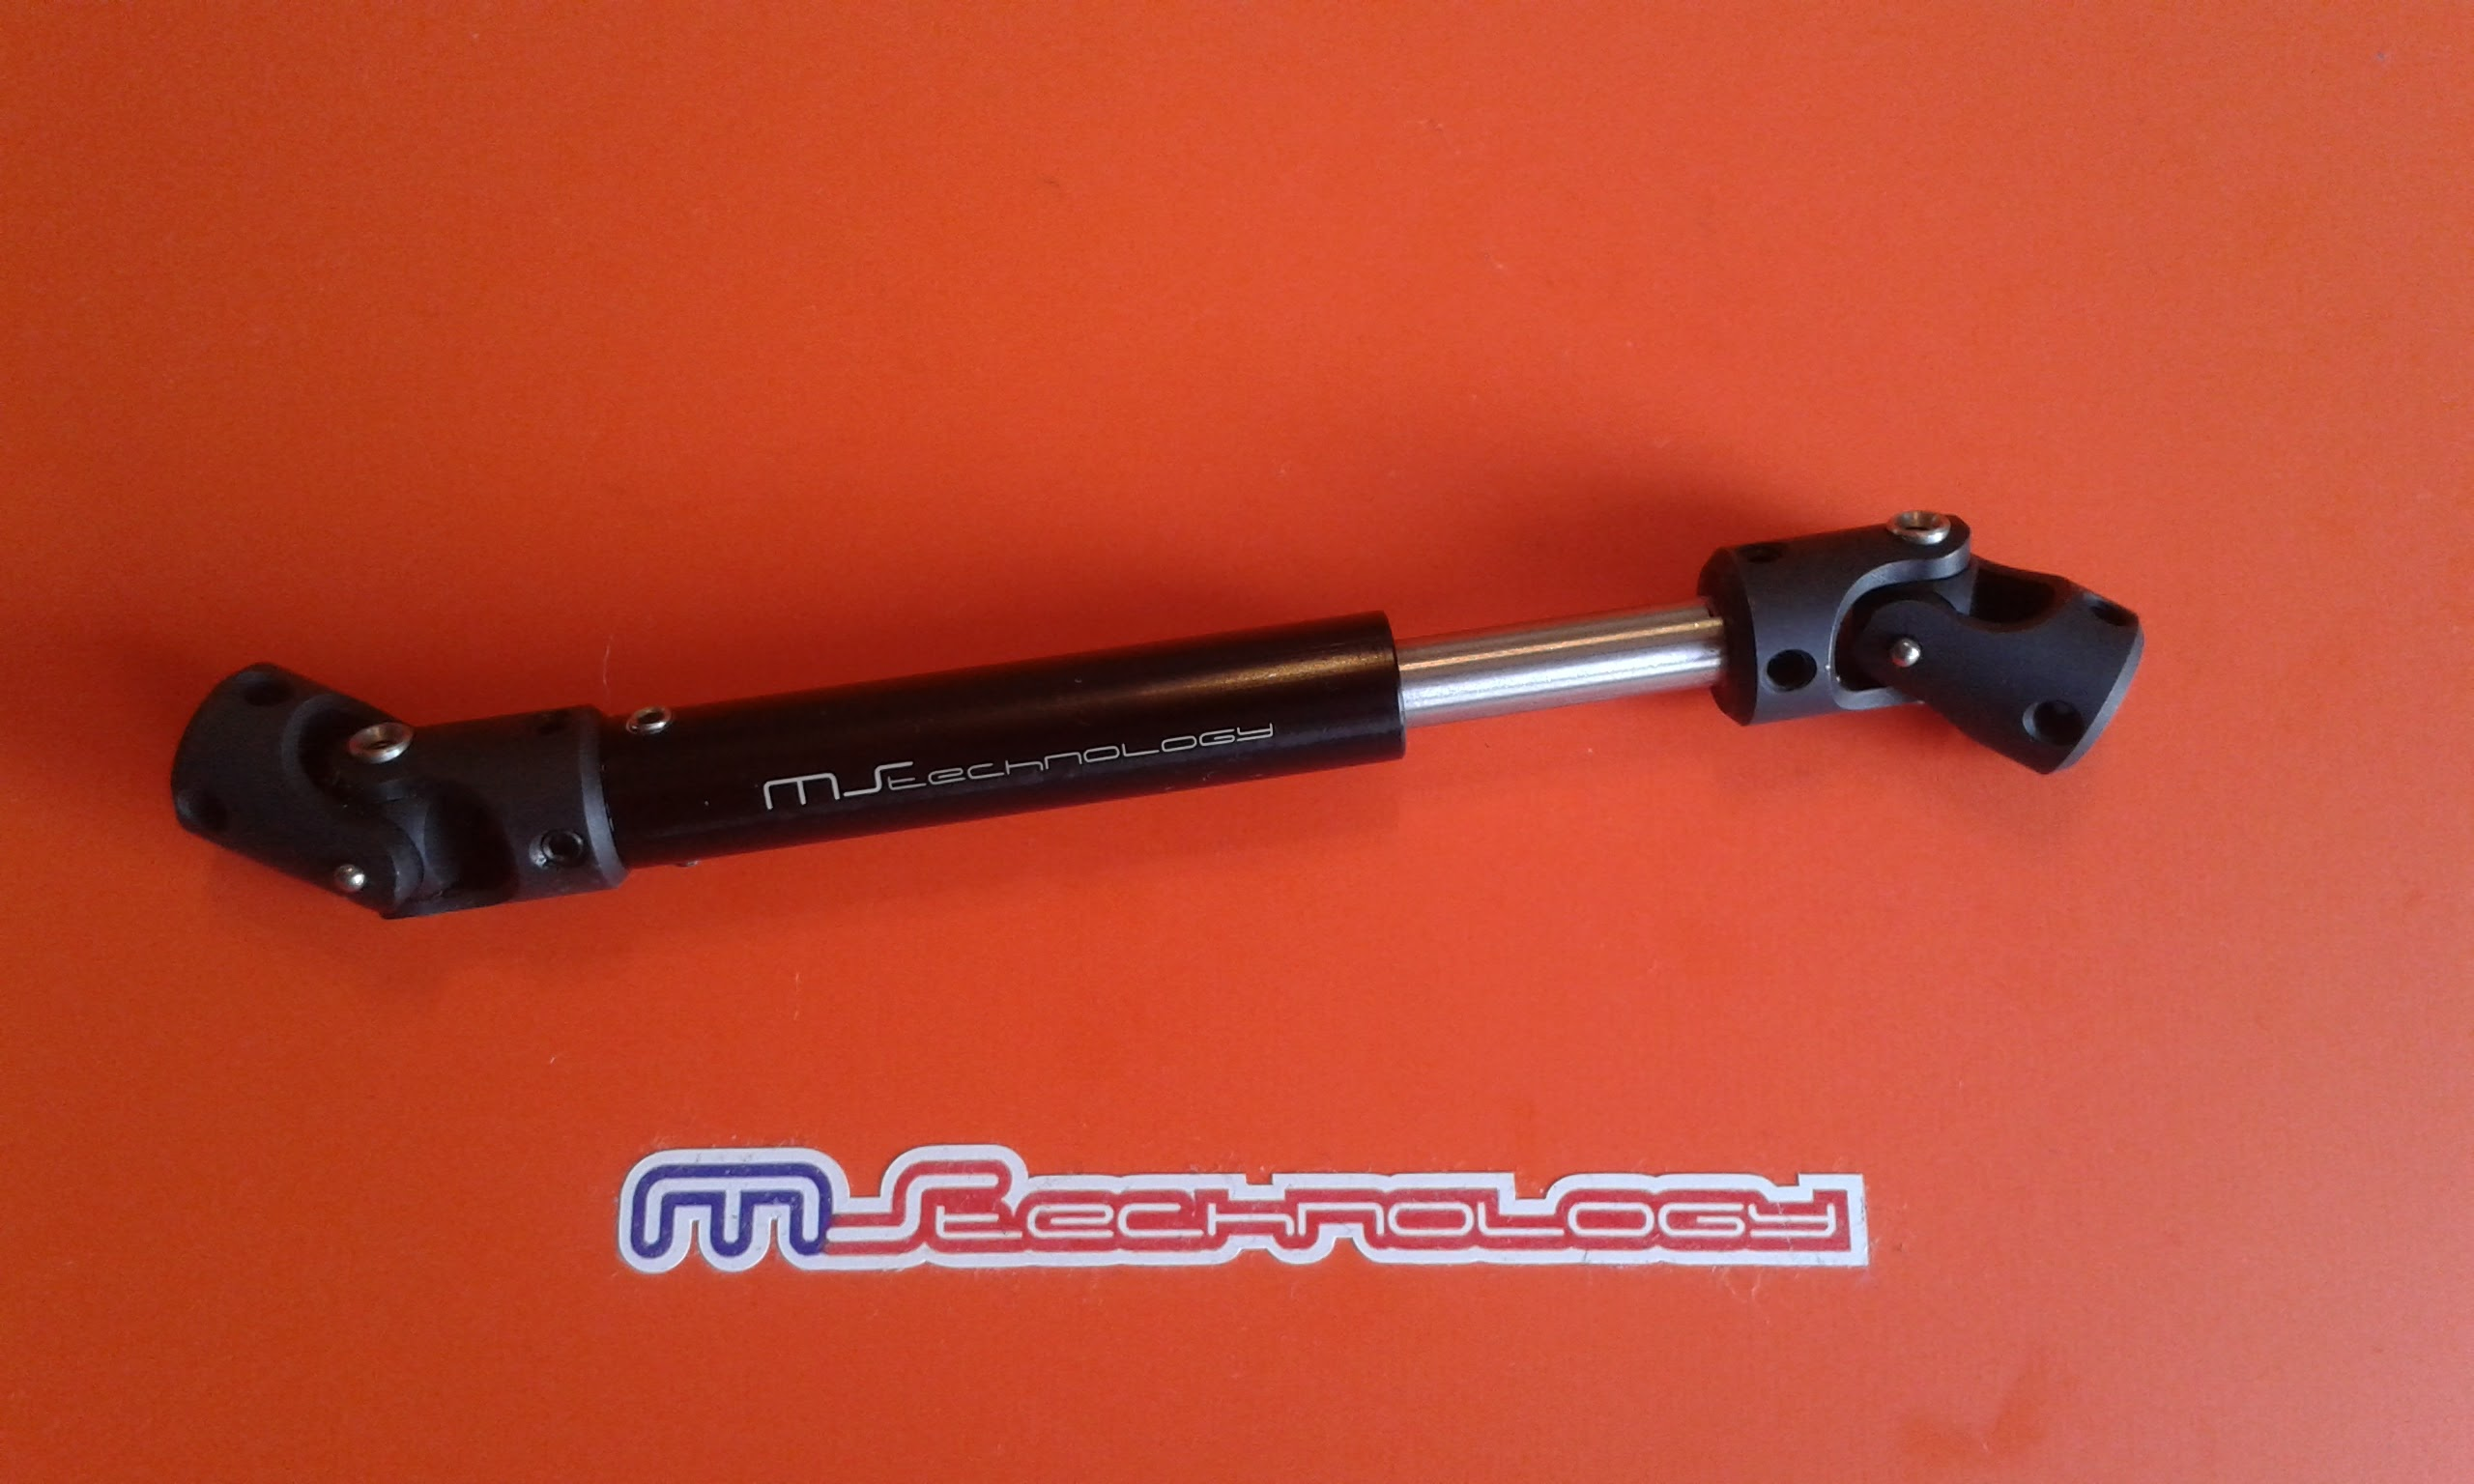 Kardan - Drive shaft D 12 ST L125/150mm